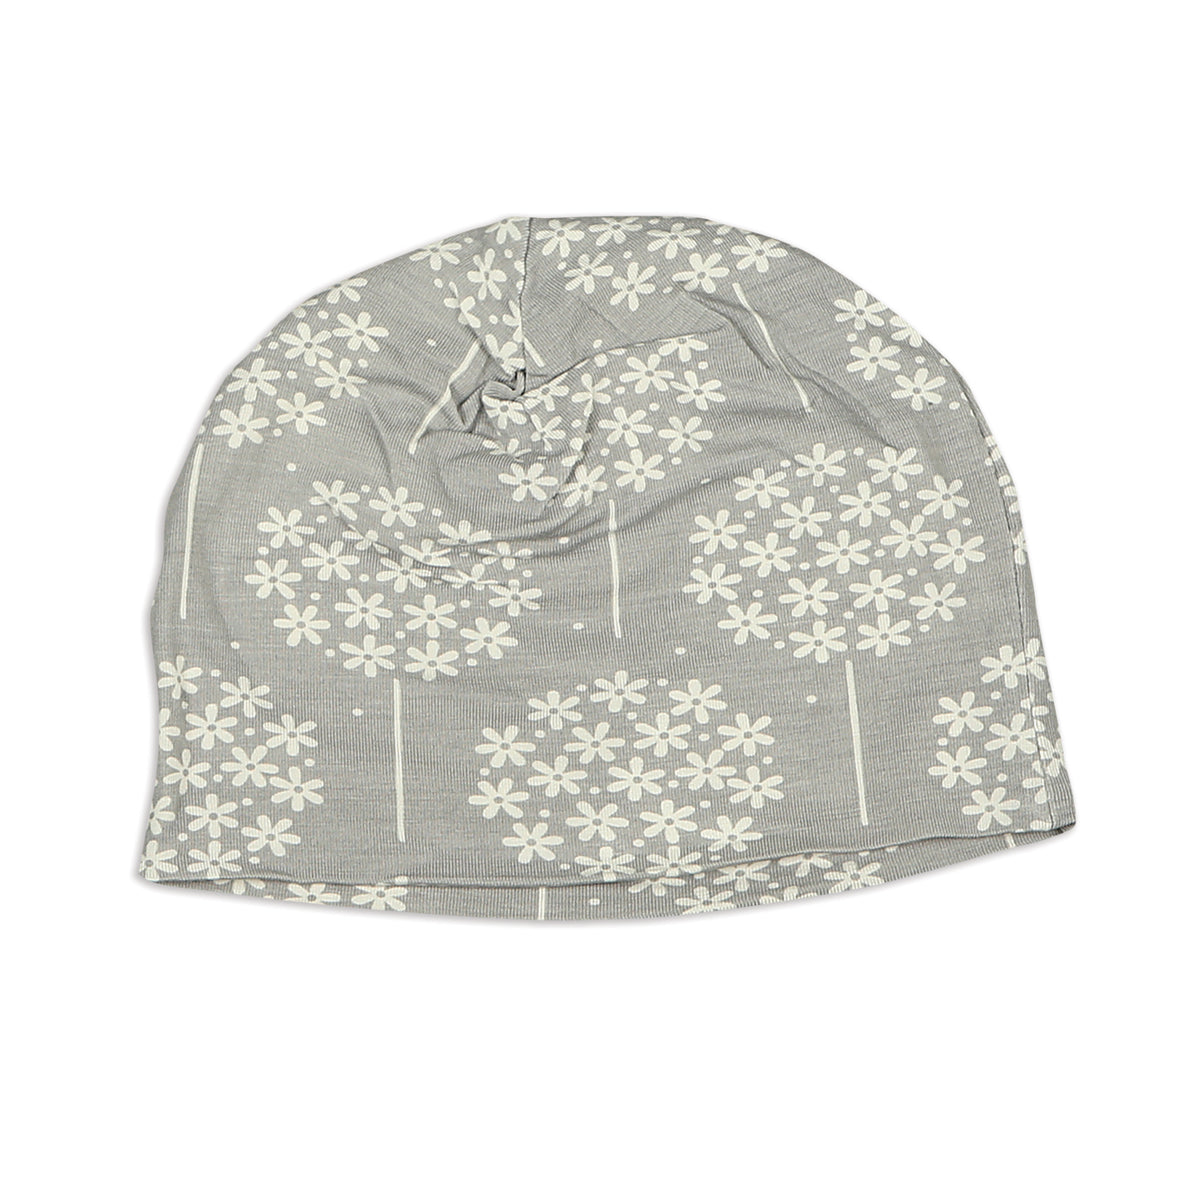 Bamboo Beanie (double layered) - Floral Dandelion Print